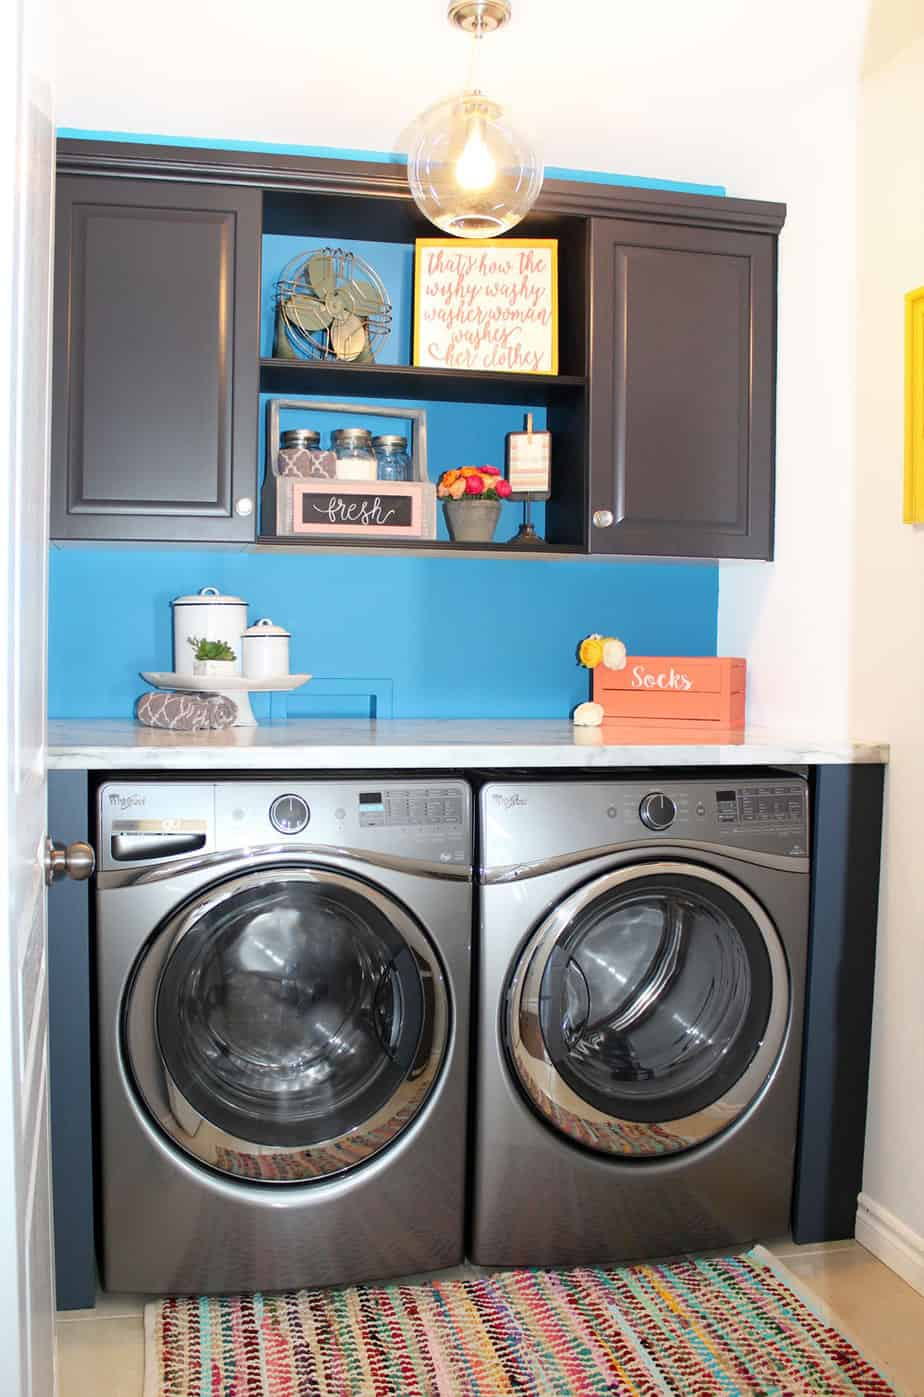 The big reveal simple laundry room ideas fynes designs fynes designs - Laundry room small space ideas paint ...